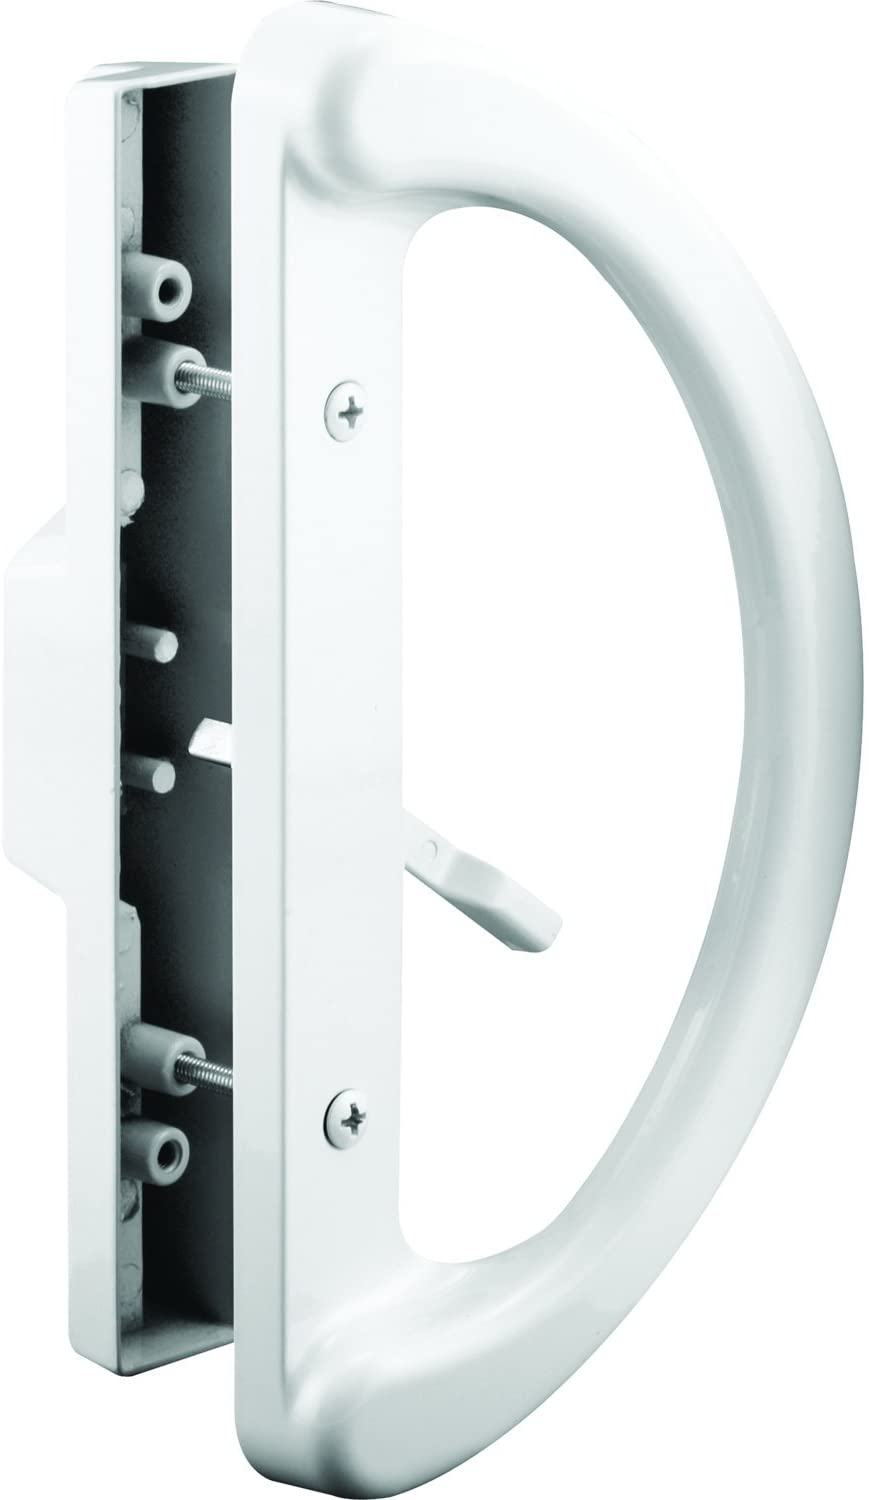 """Slide-Co 143598 Sliding Patio Door Handle Set - Replace Old or Damaged Door Handles Quickly and Easily – White Diecast, Mortise Style, Non-Keyed (Fits 3-15/16"""" Hole Spacing)"""